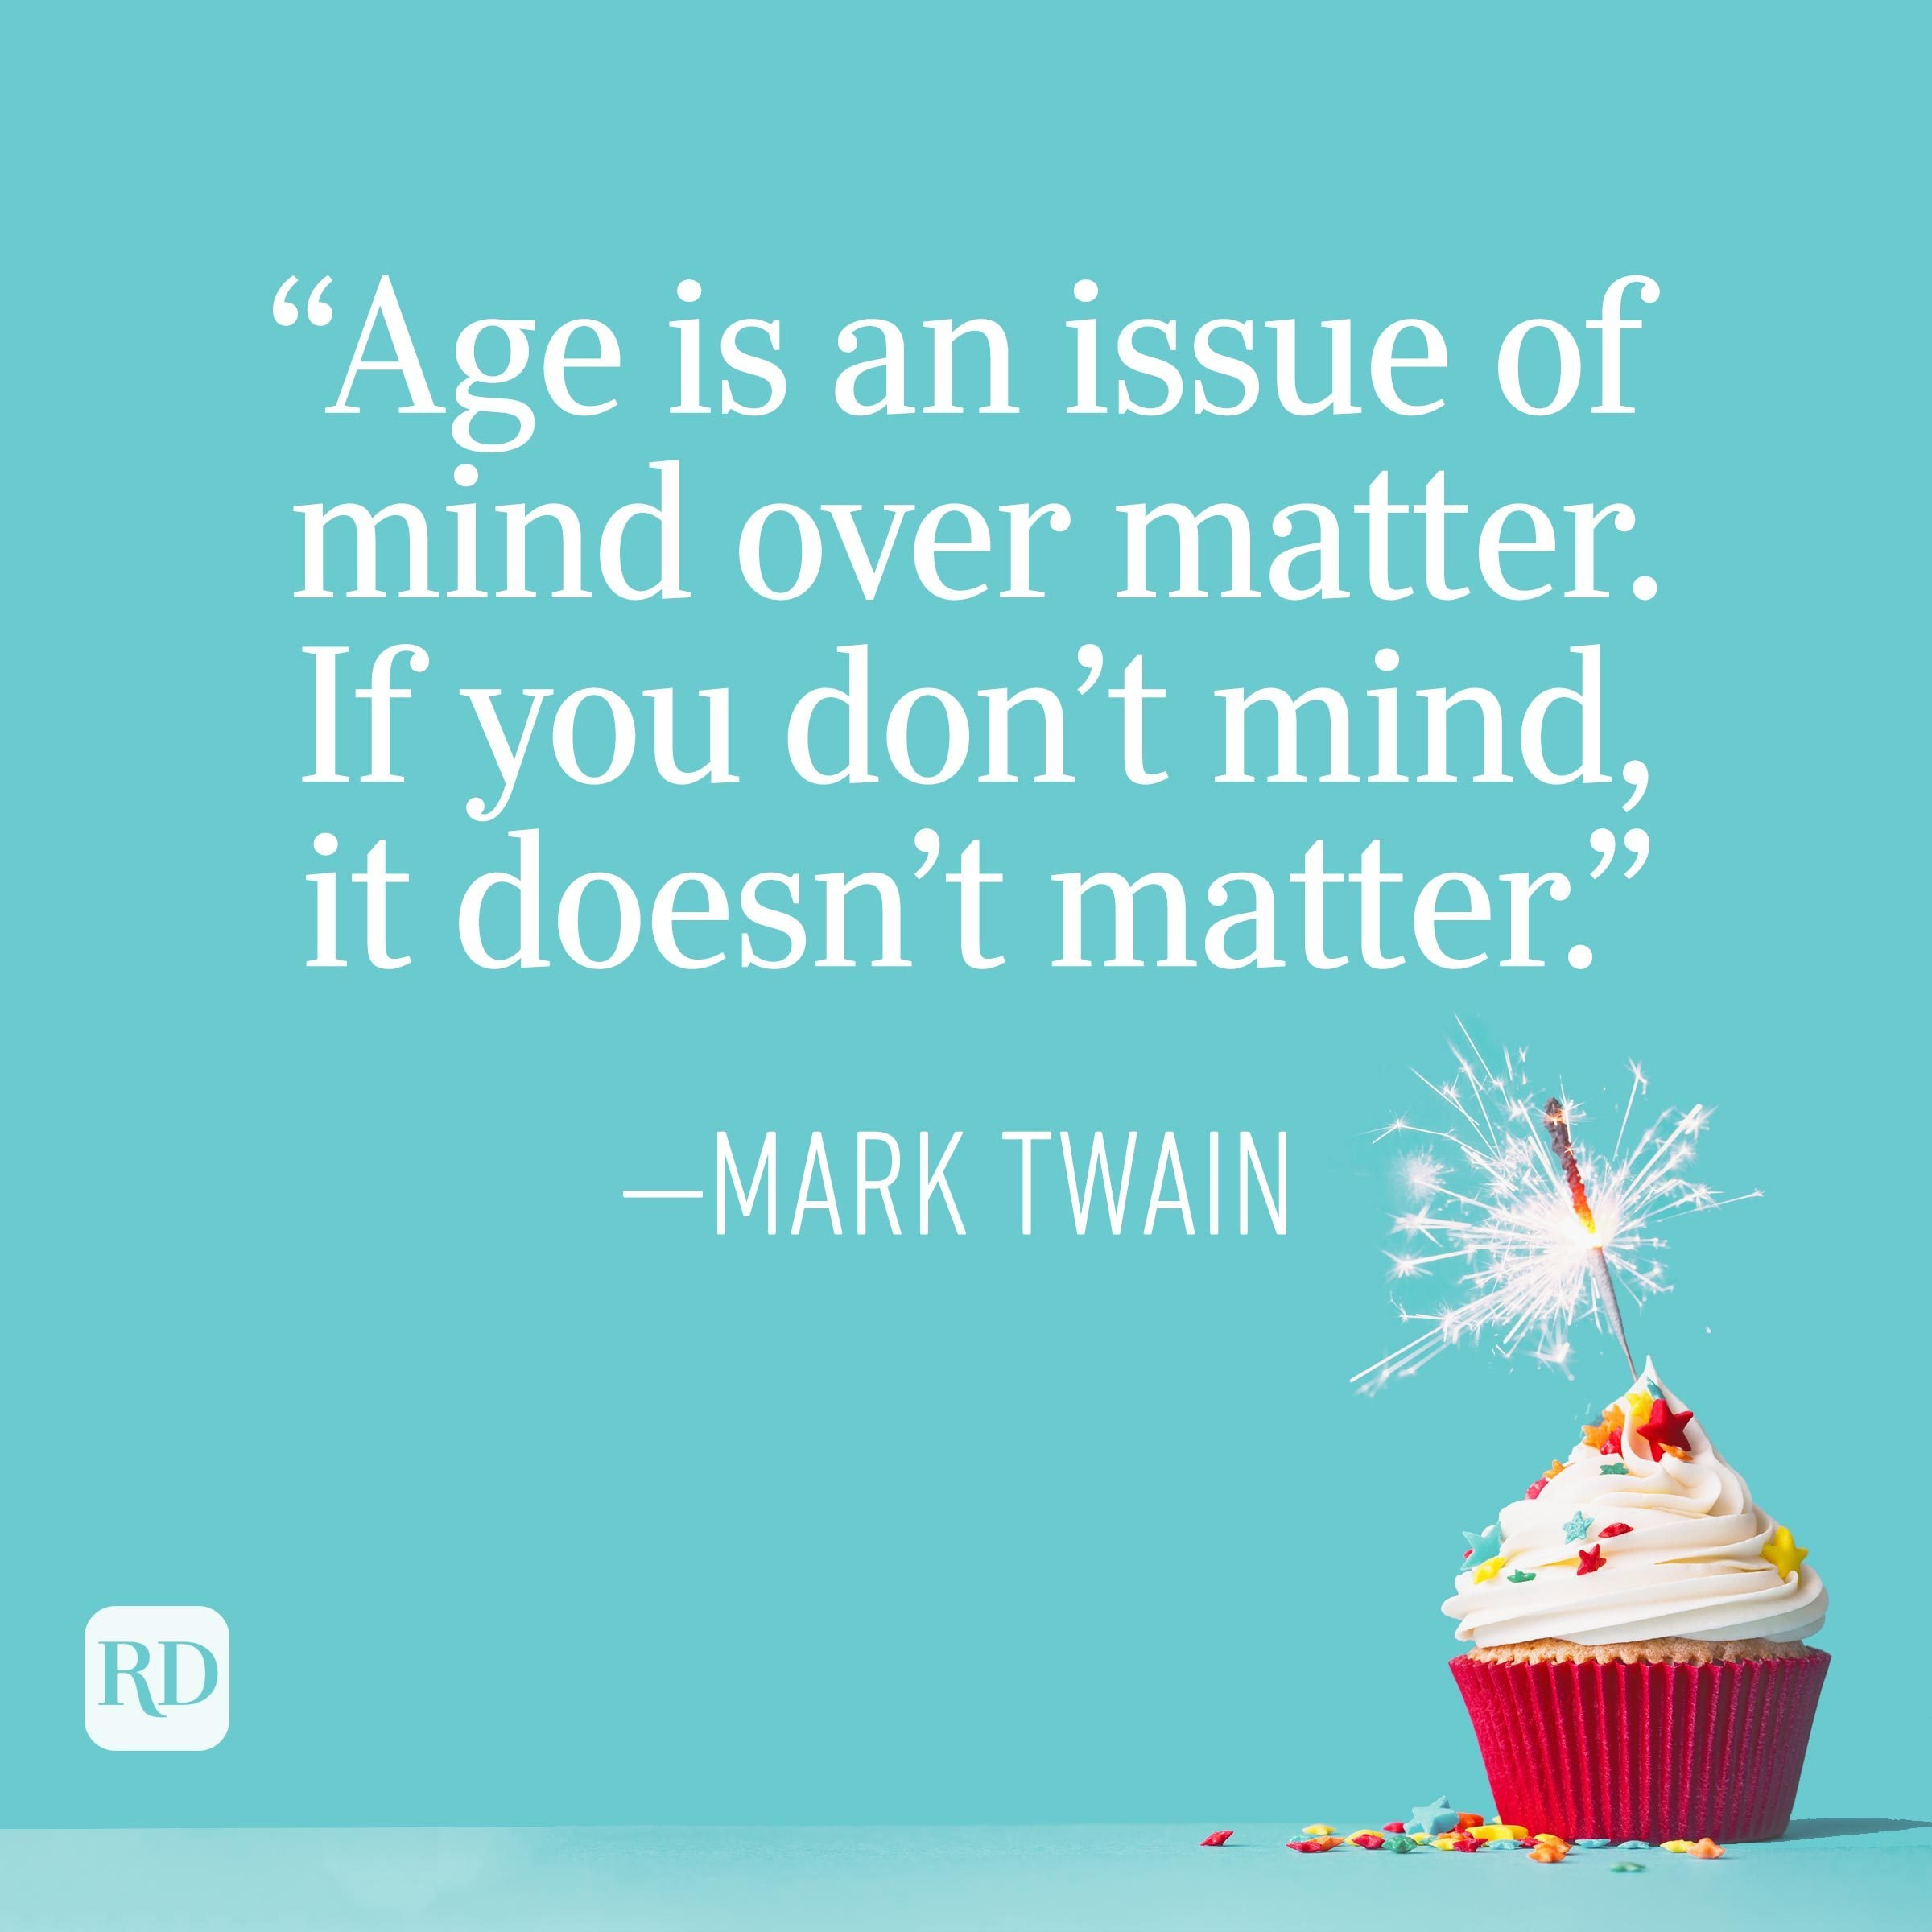 """""""Age is an issue of mind over matter. If you don't mind, it doesn't matter."""" —Mark Twain"""